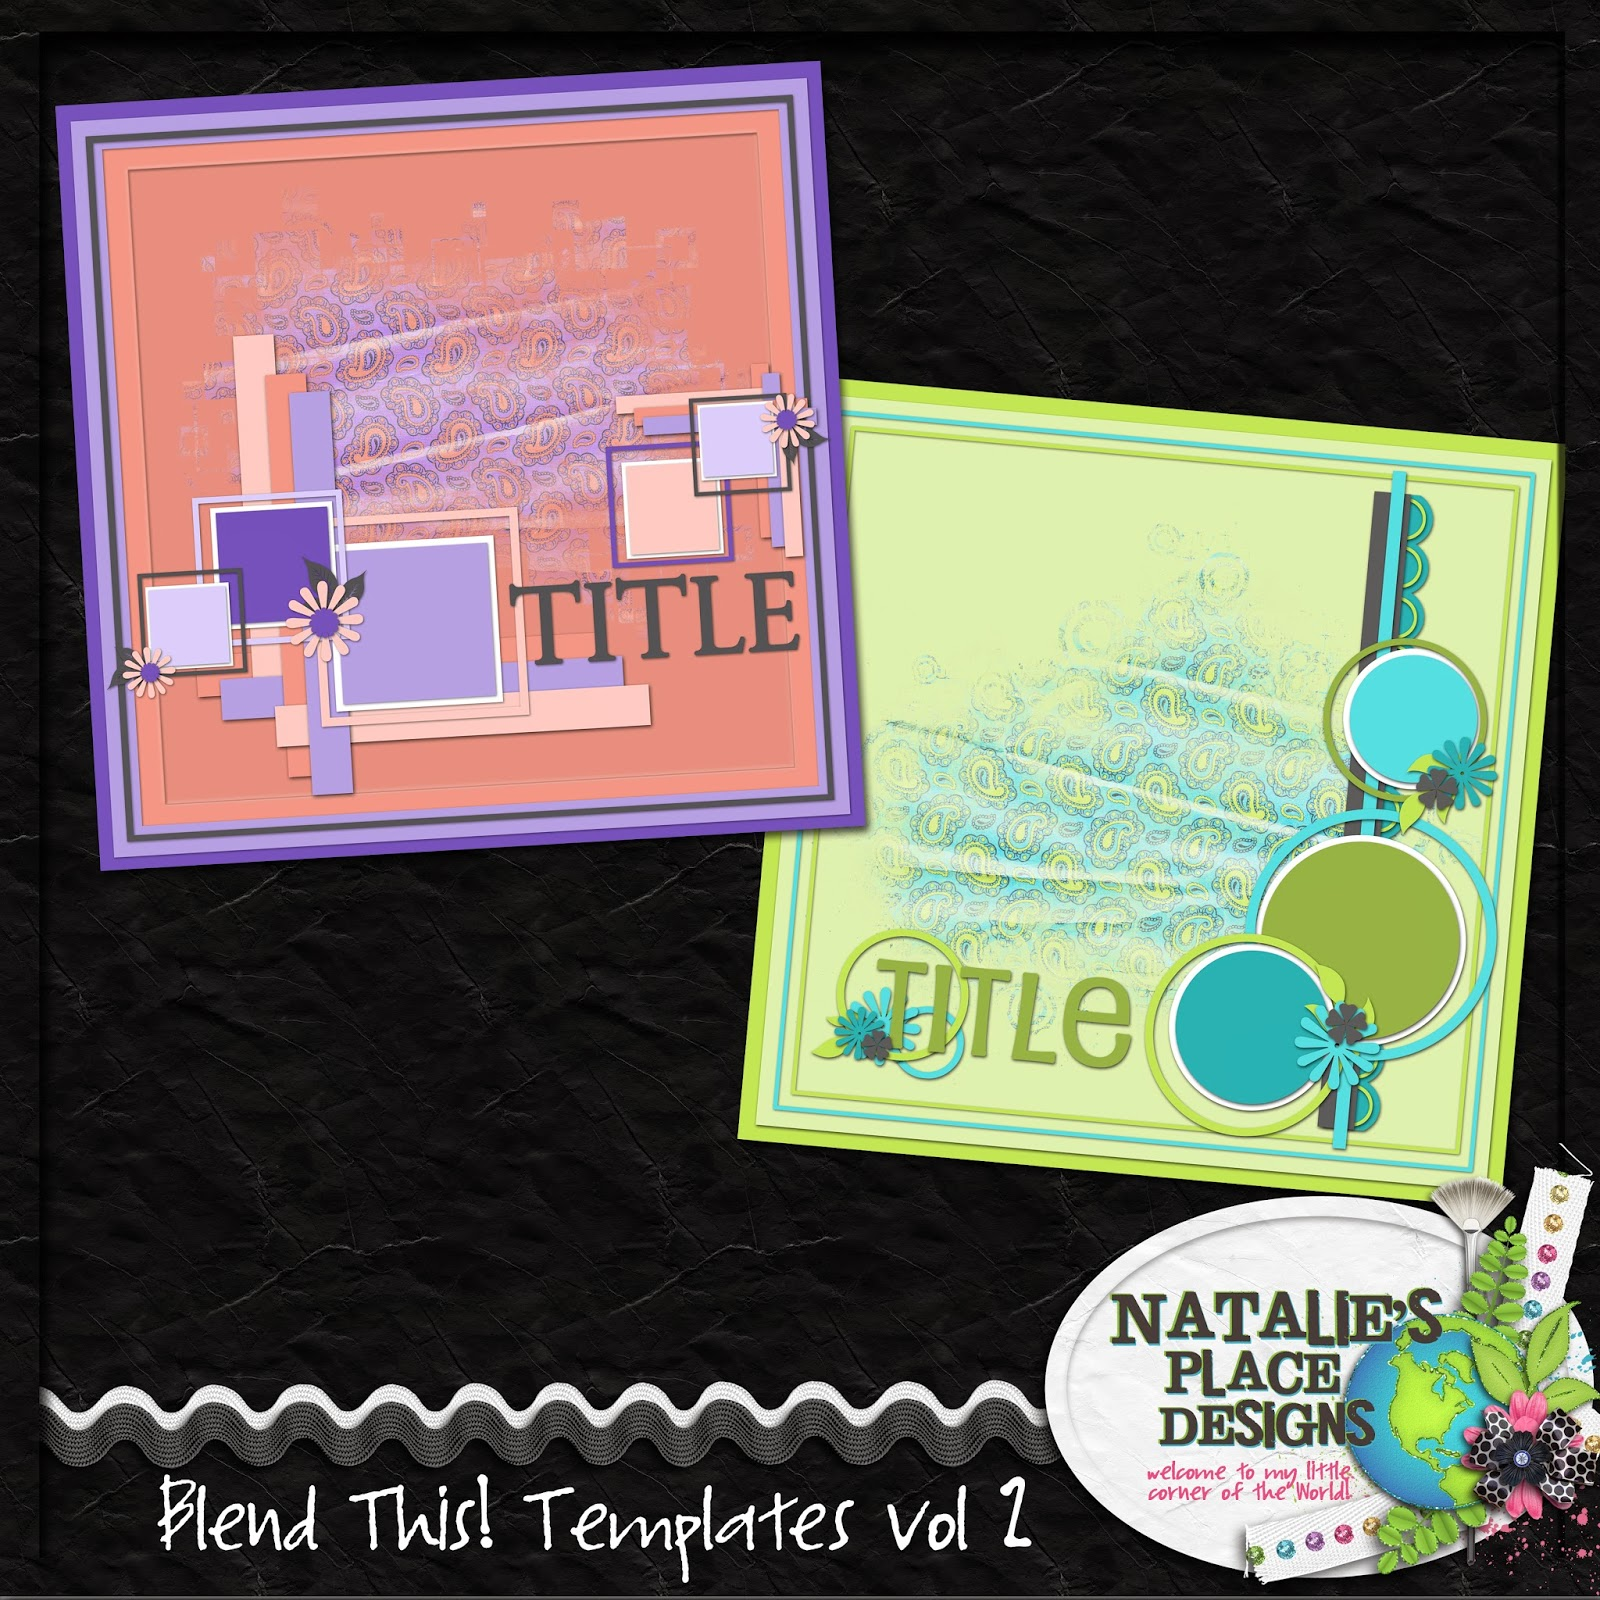 http://www.nataliesplacedesigns.com/store/p494/Blend_This%21_Templates_Vol_2.html